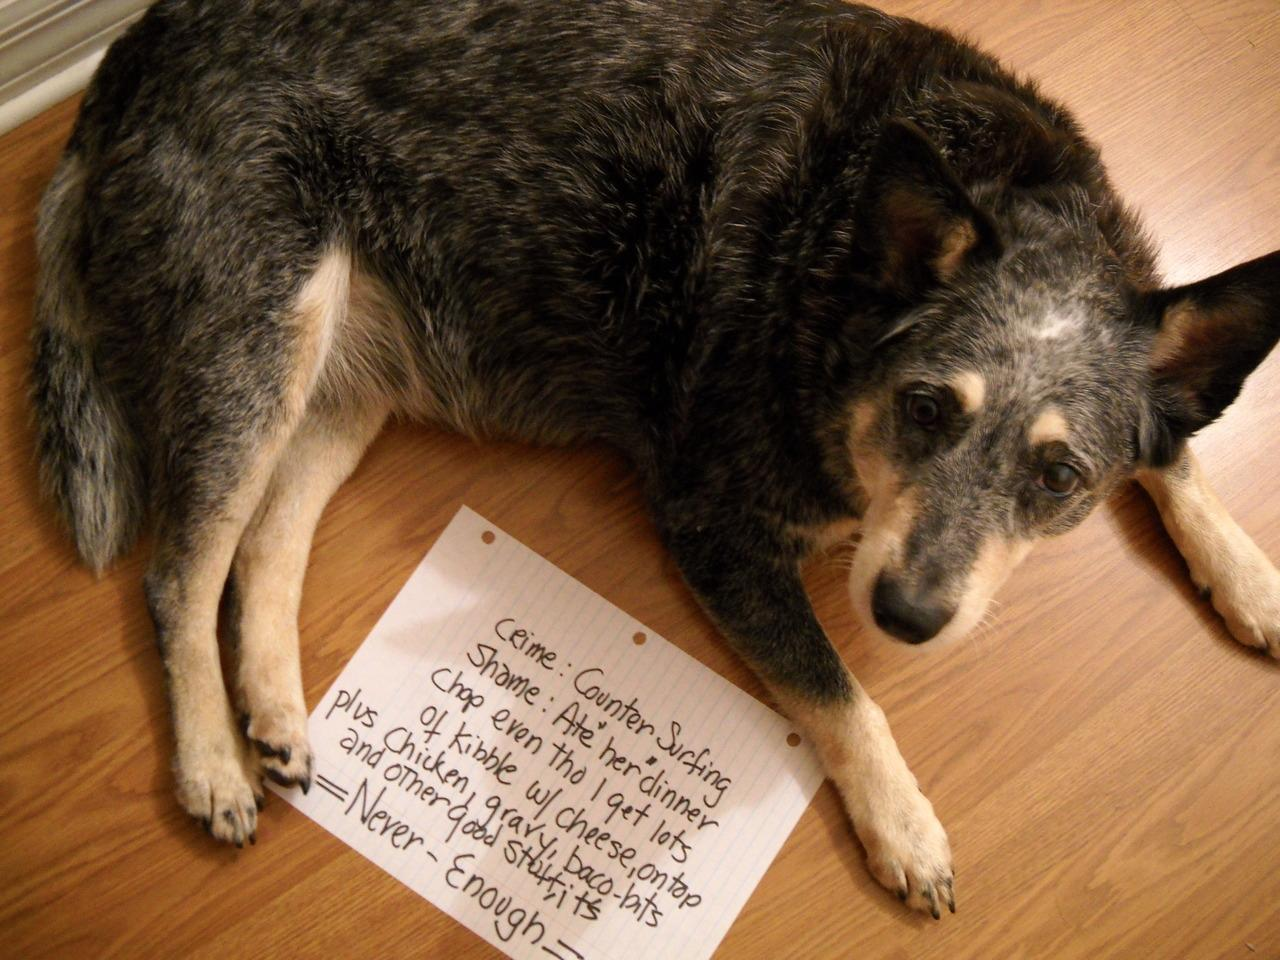 20 Bad Dogs Being Shamed With Signs 07DvzXCT